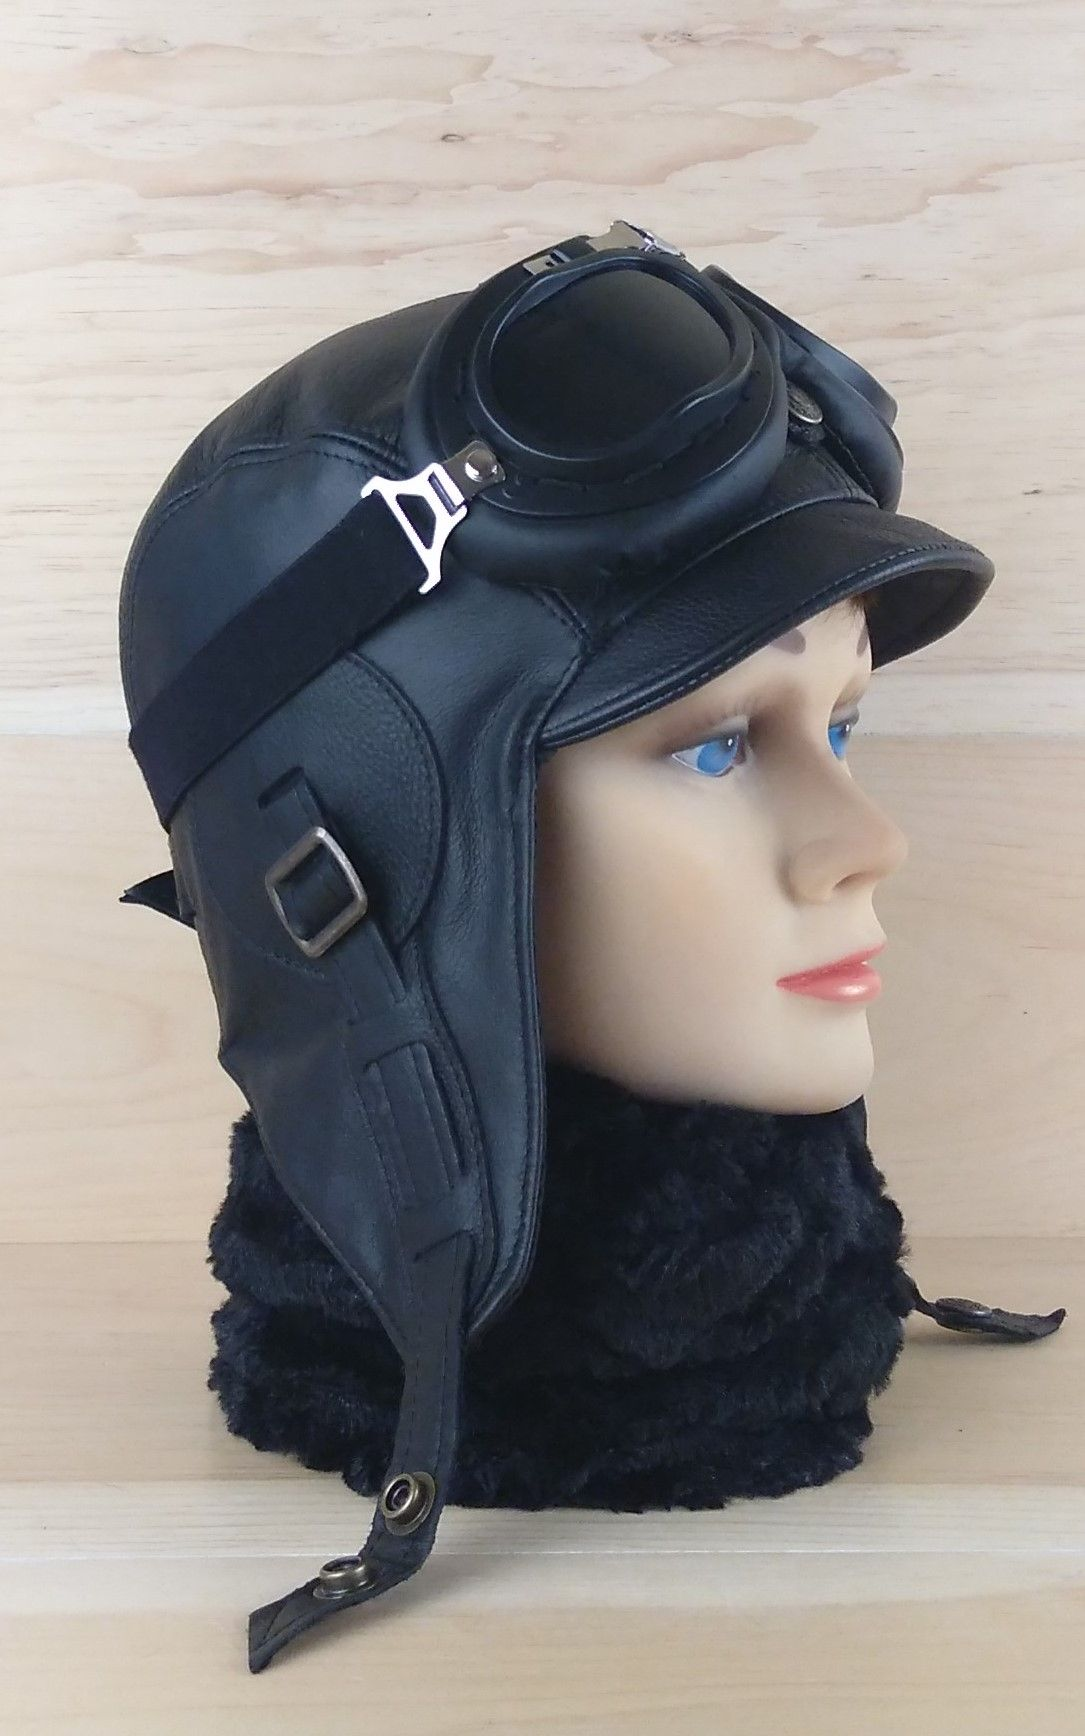 1746c05d88ff85 Leather aviator hat, black pilot cap, steampunk hat and goggles, motorcycle  helmet for women. Buy on Etsy, FREE SHIPPING!